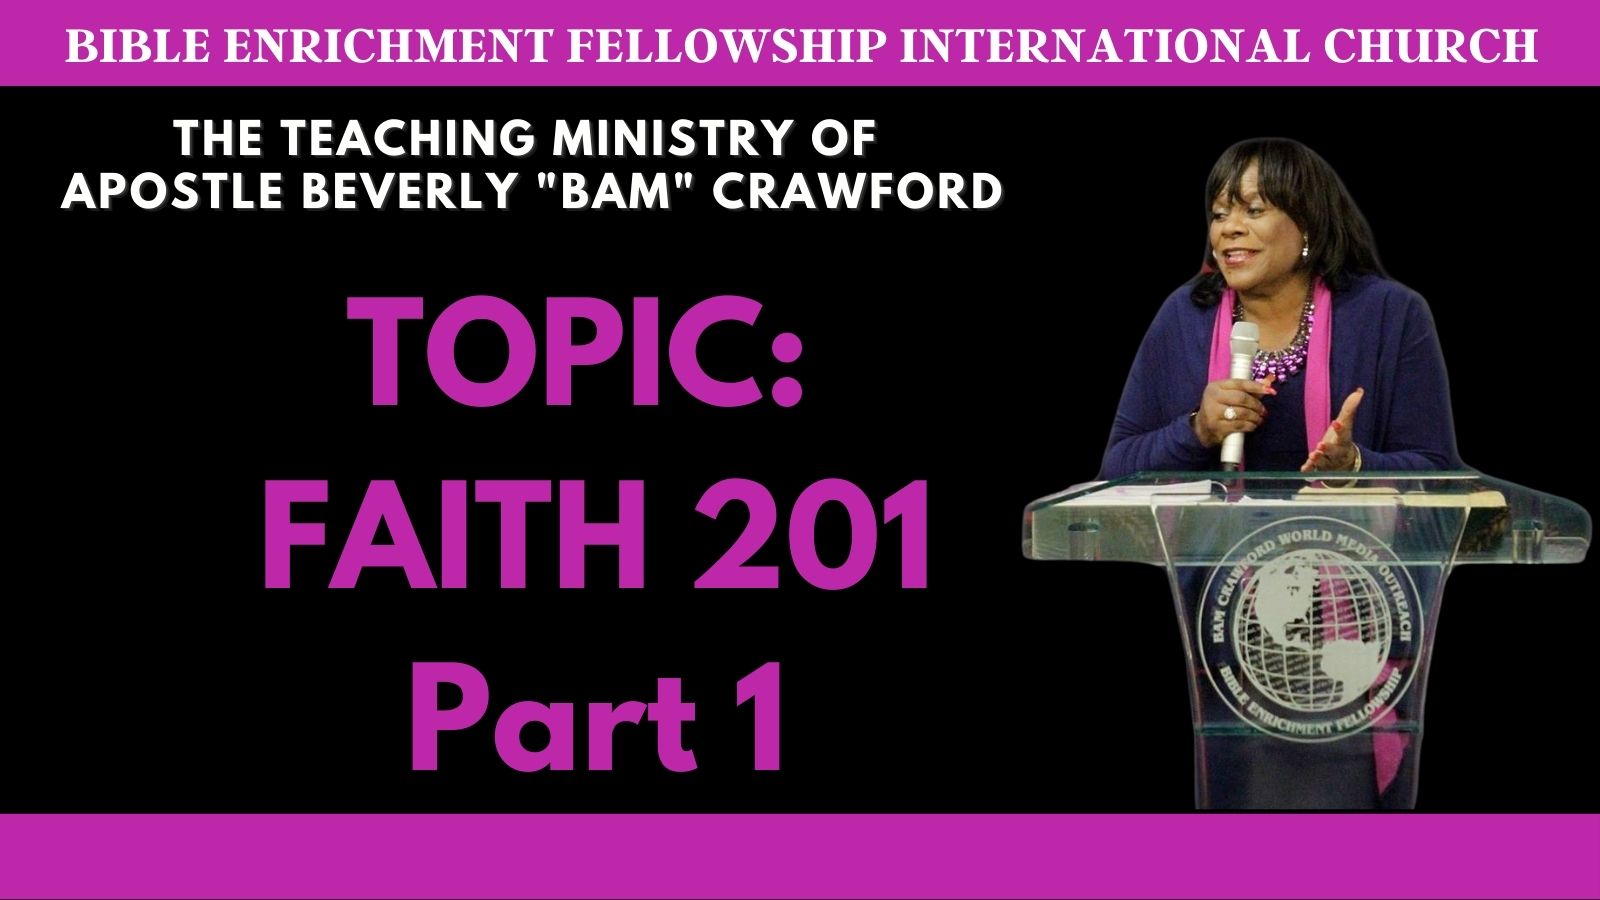 Faith 201 - Without Faith it Is Impossible To